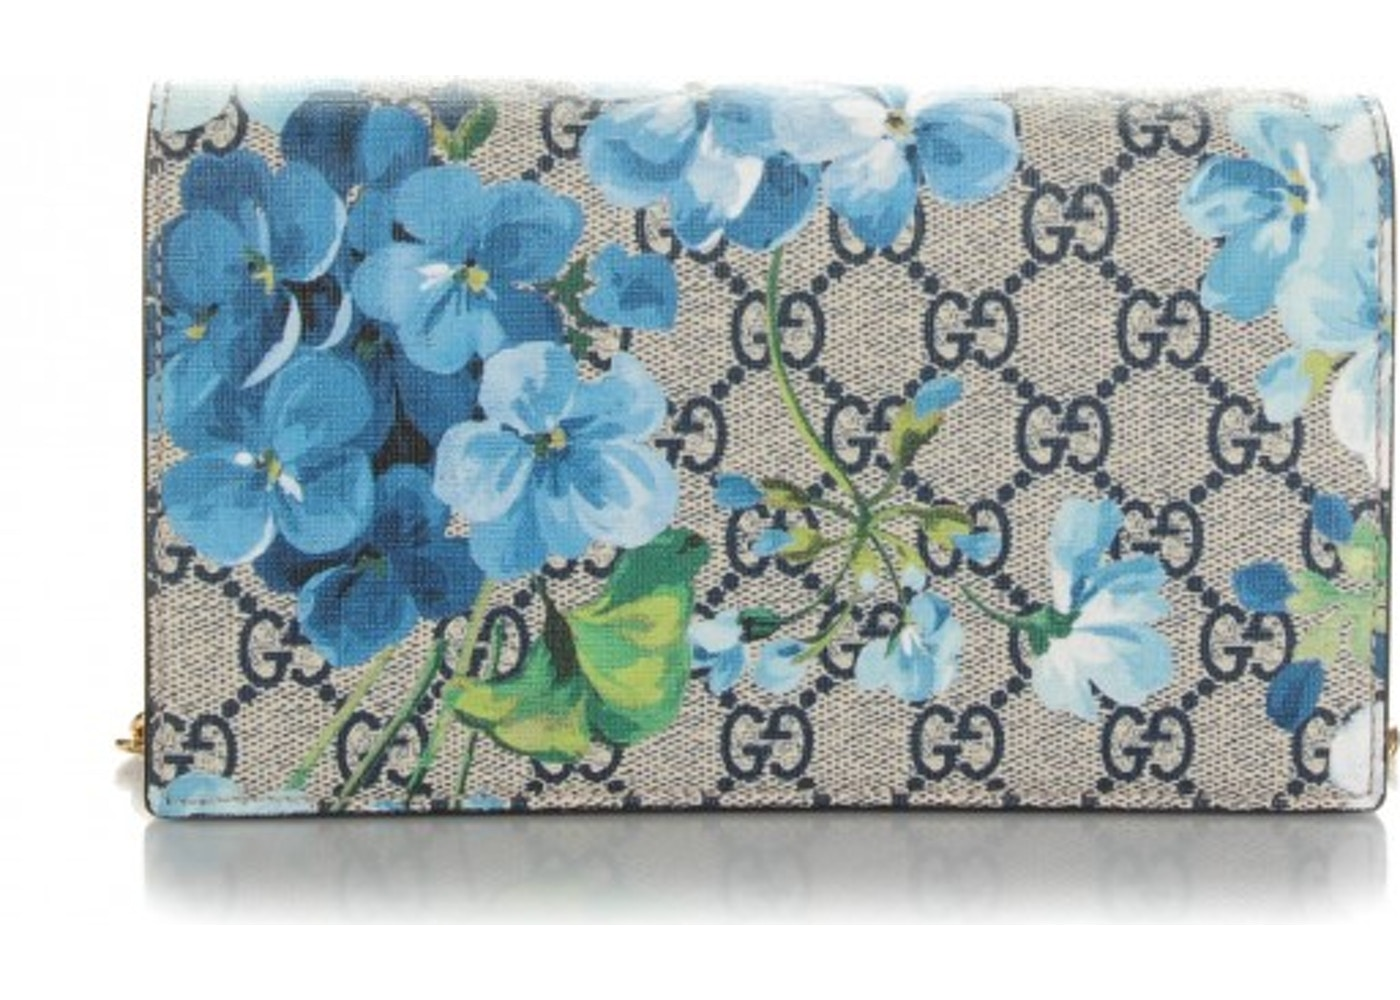 f55cad6f1bf917 Gucci Chain Wallet Blue Blooms Canvas Beige/Ebony. Blue Blooms Canvas  Beige/Ebony